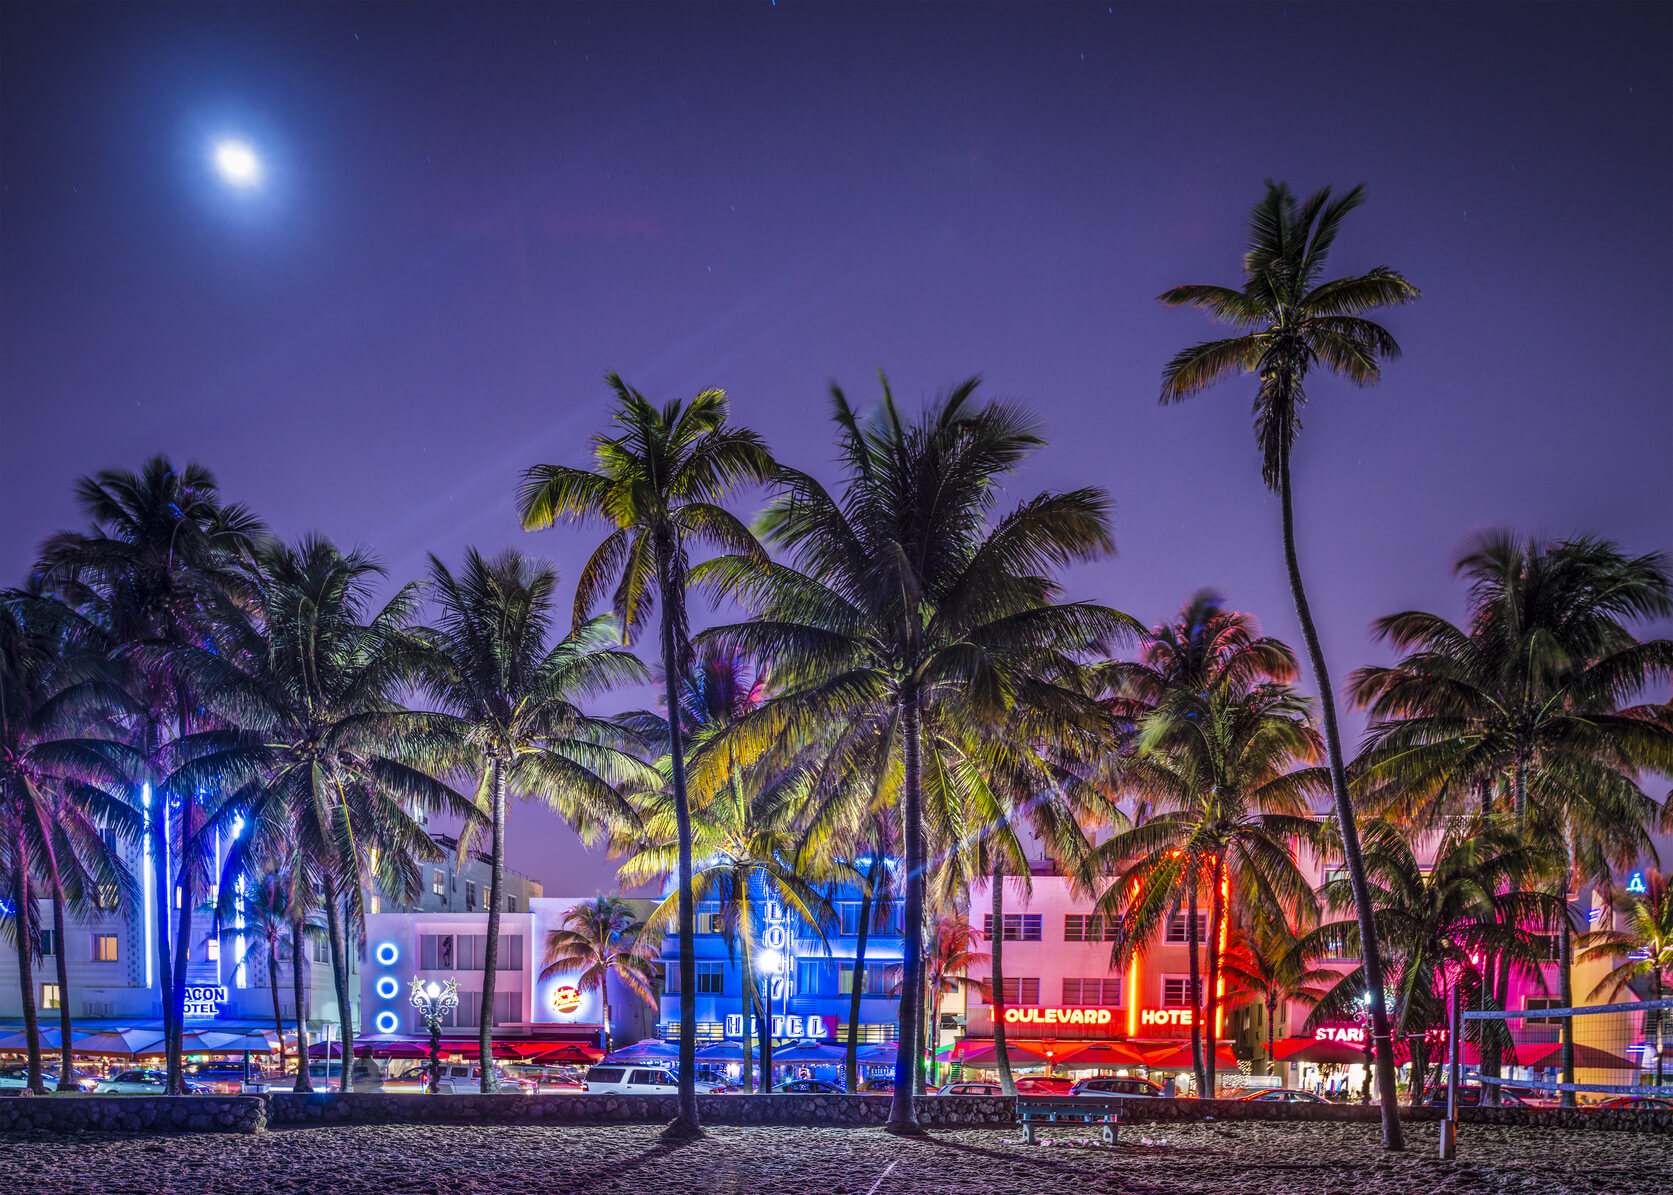 Rio de Janeiro, Brazil to Miami, USA for only $285 USD roundtrip (Oct-May dates)